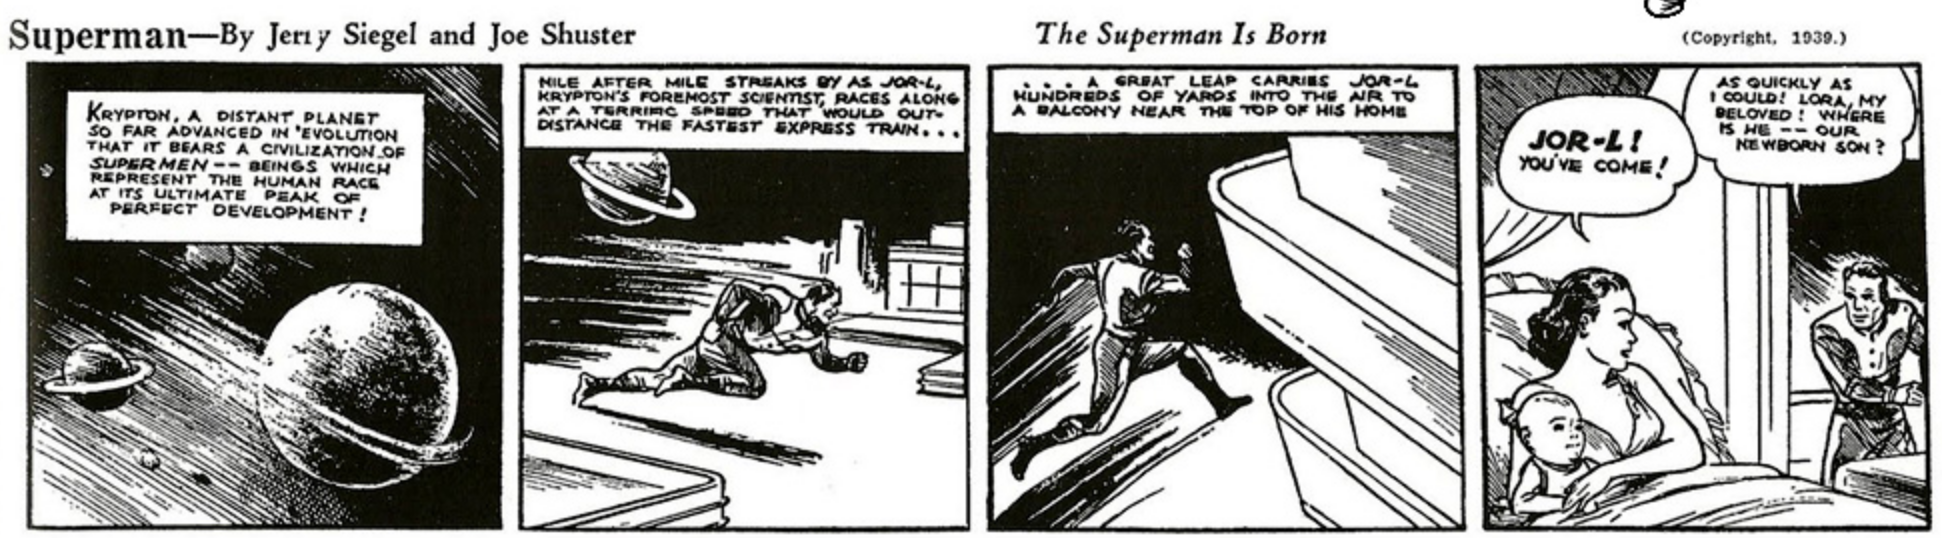 The first Superman newspaper strip from 1939, depicting the origin of Superman.